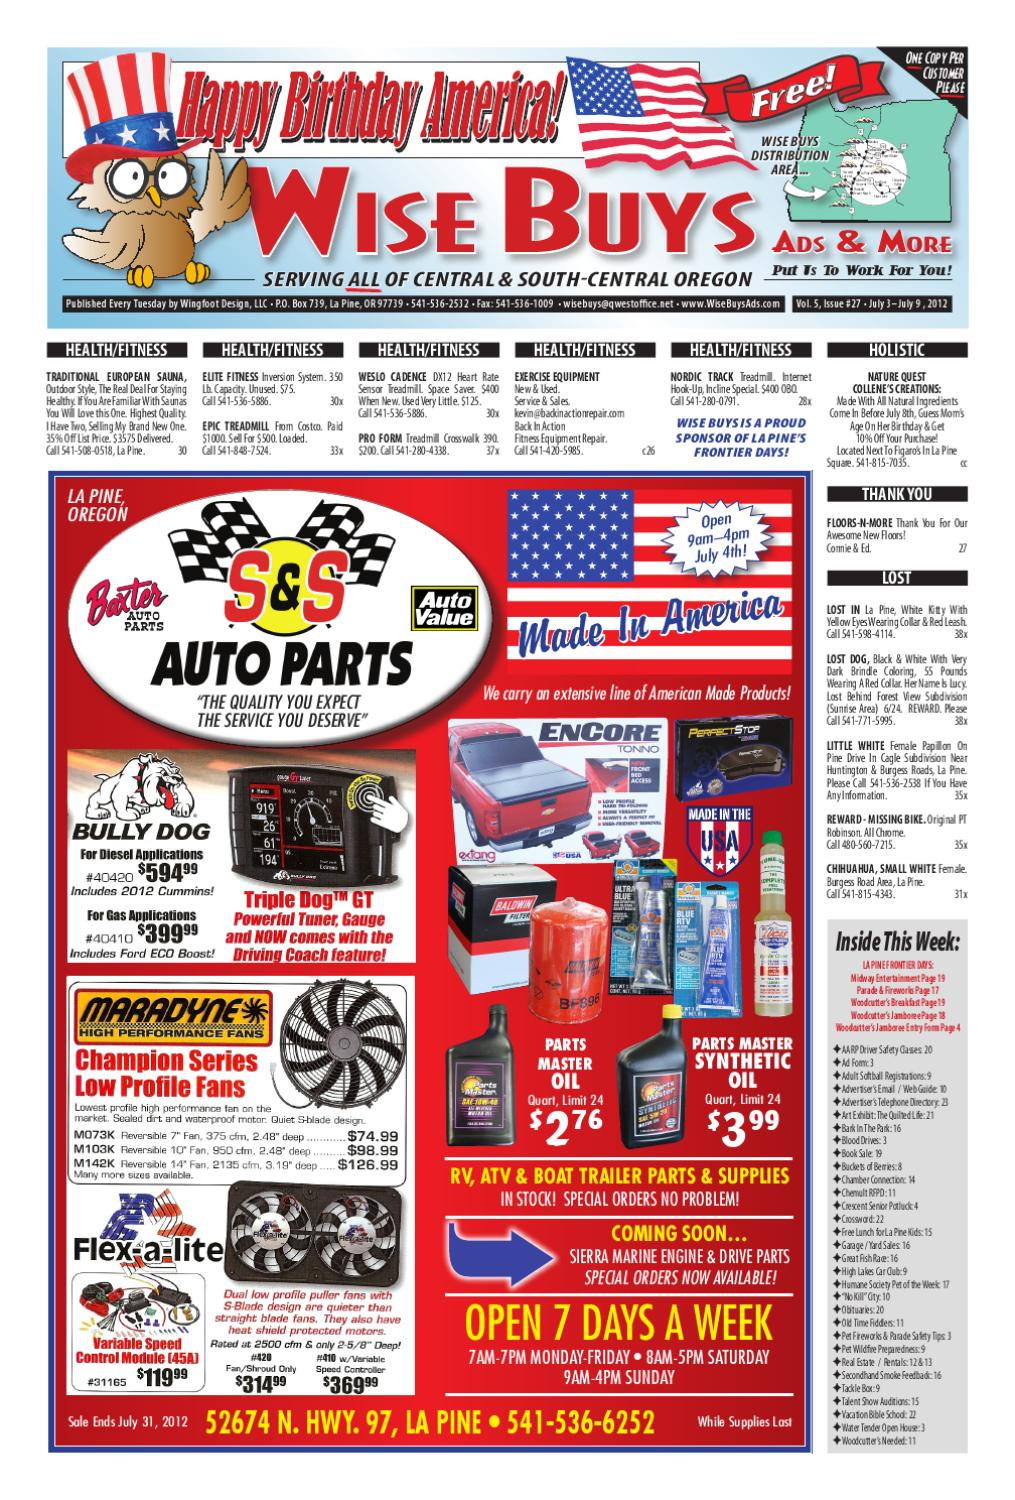 Wise Buys 5-27 by Wise Buys Ads & More - issuu Harness Phillips Wire on